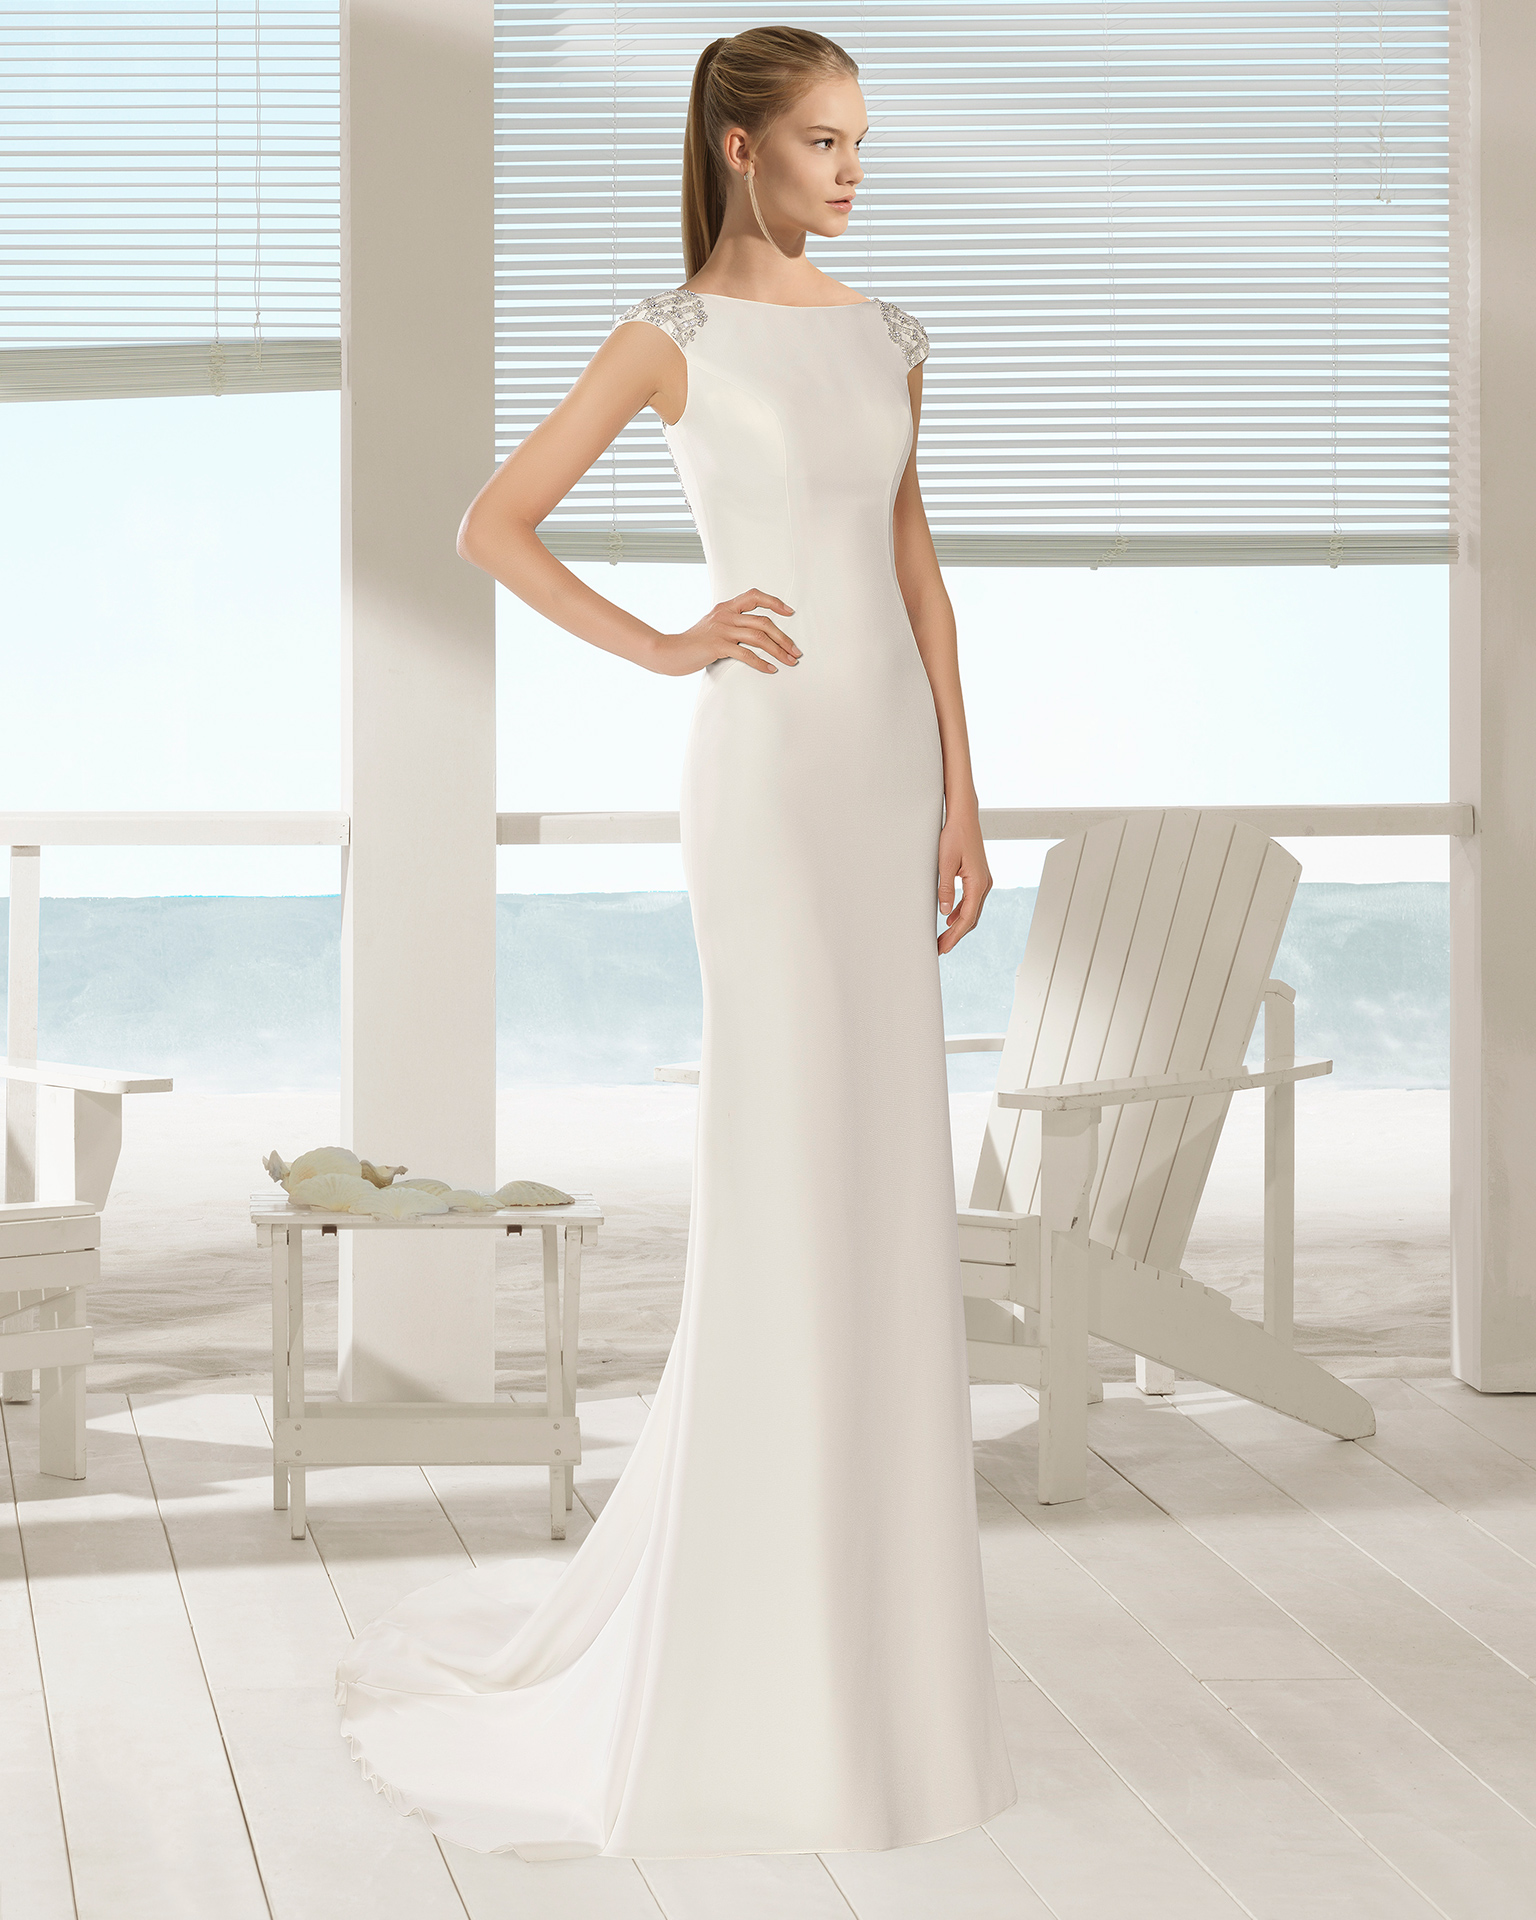 Crepe sheath wedding dress with bateau neckline and jeweled back, in natural.